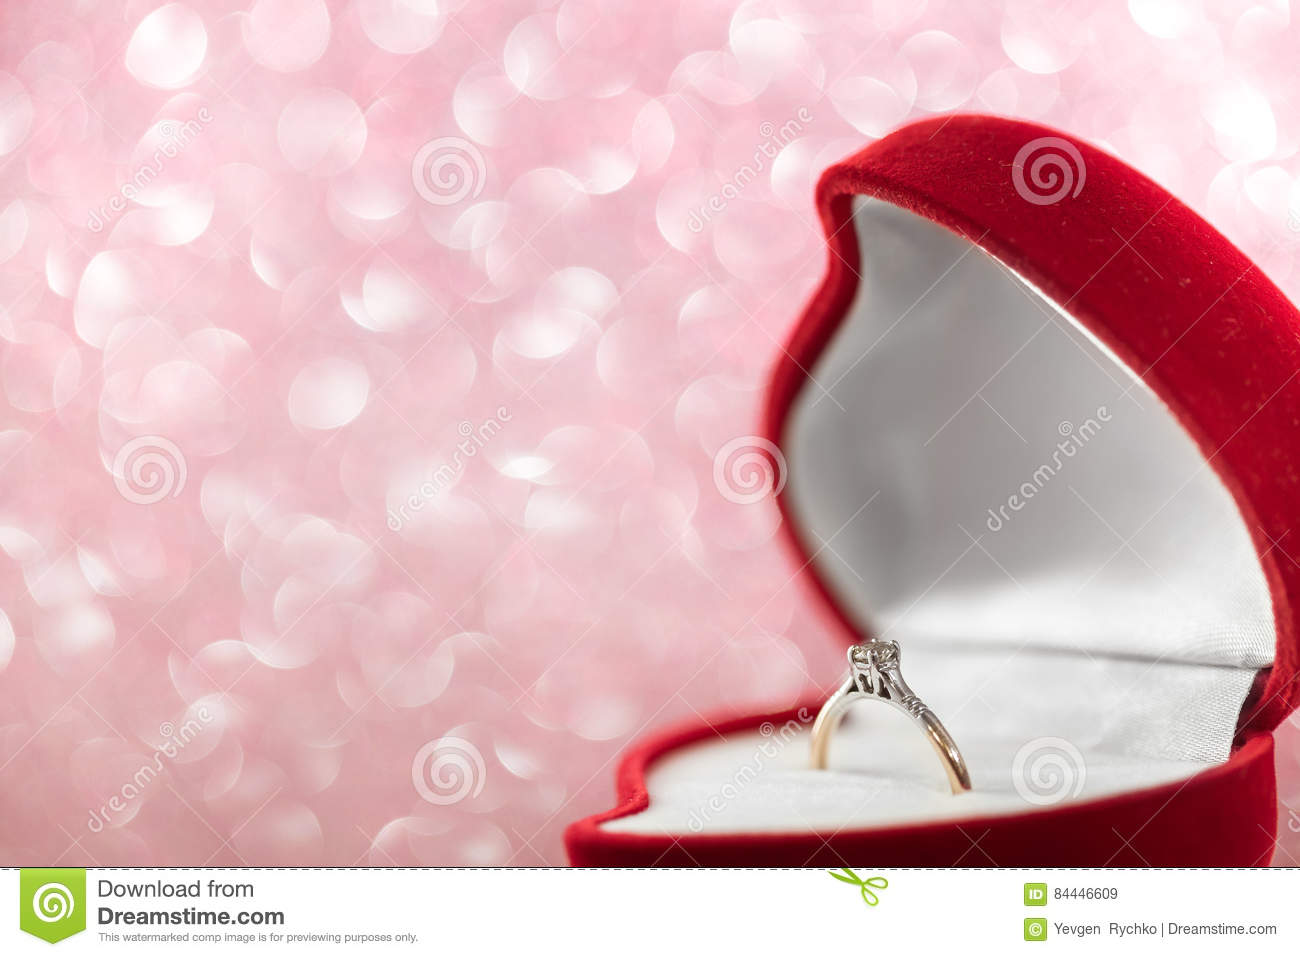 Wedding Diamond Ring In Red Heart Shaped Gift Box Stock Image ...